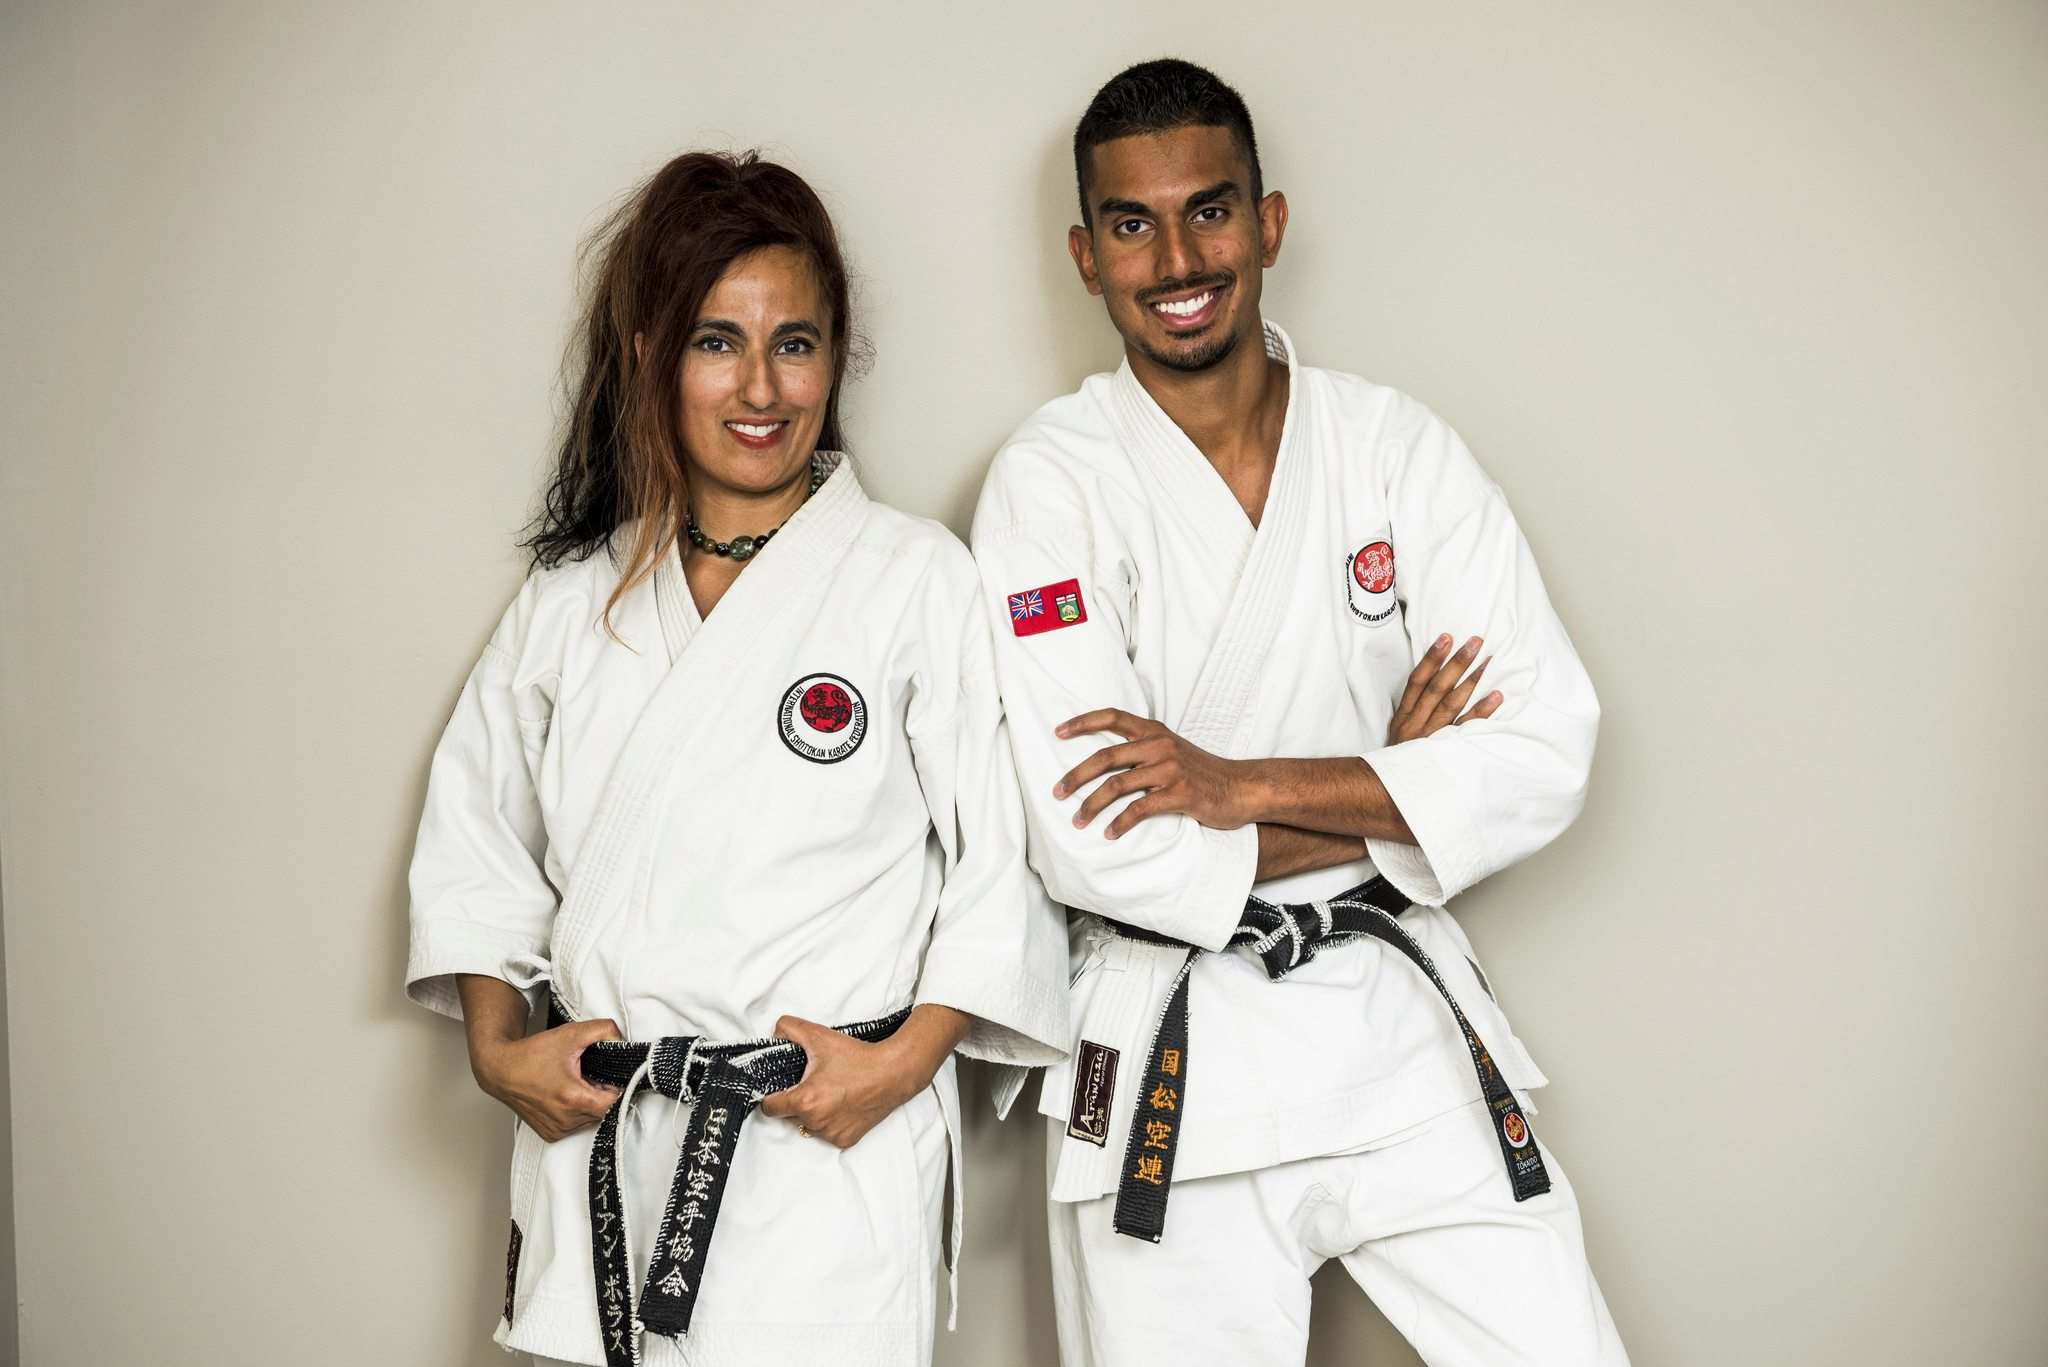 DAVID LIPNOWSKI / WINNIPEG FREE PRESS</p><p>Sofia Mirza and her son Rahim train together six days a week at several karate clubs around Winnipeg, spending several hours each day working on their sport.</p></p>